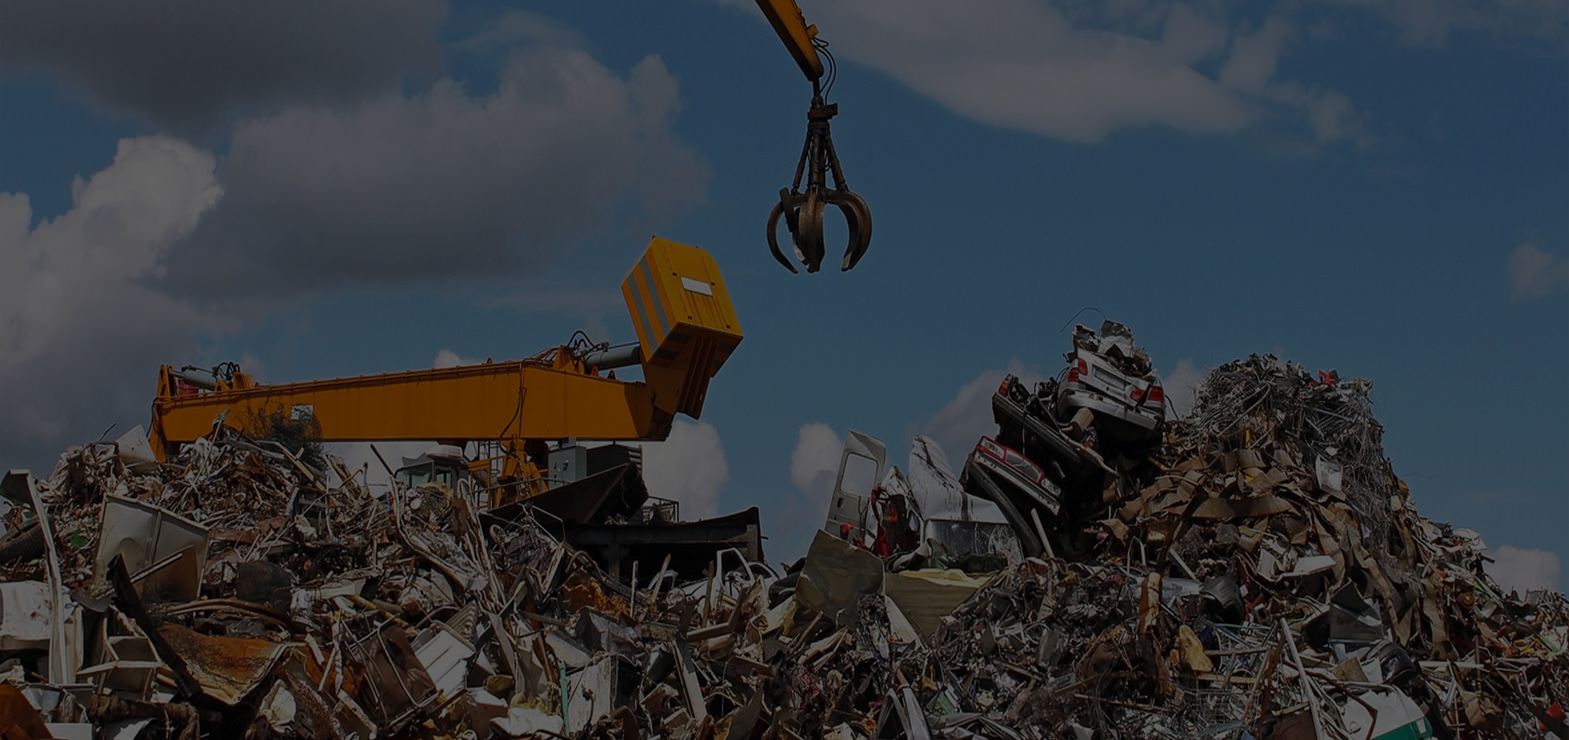 SR Enterprises Scrap Buyers Scrap Buyer Scrap Buy